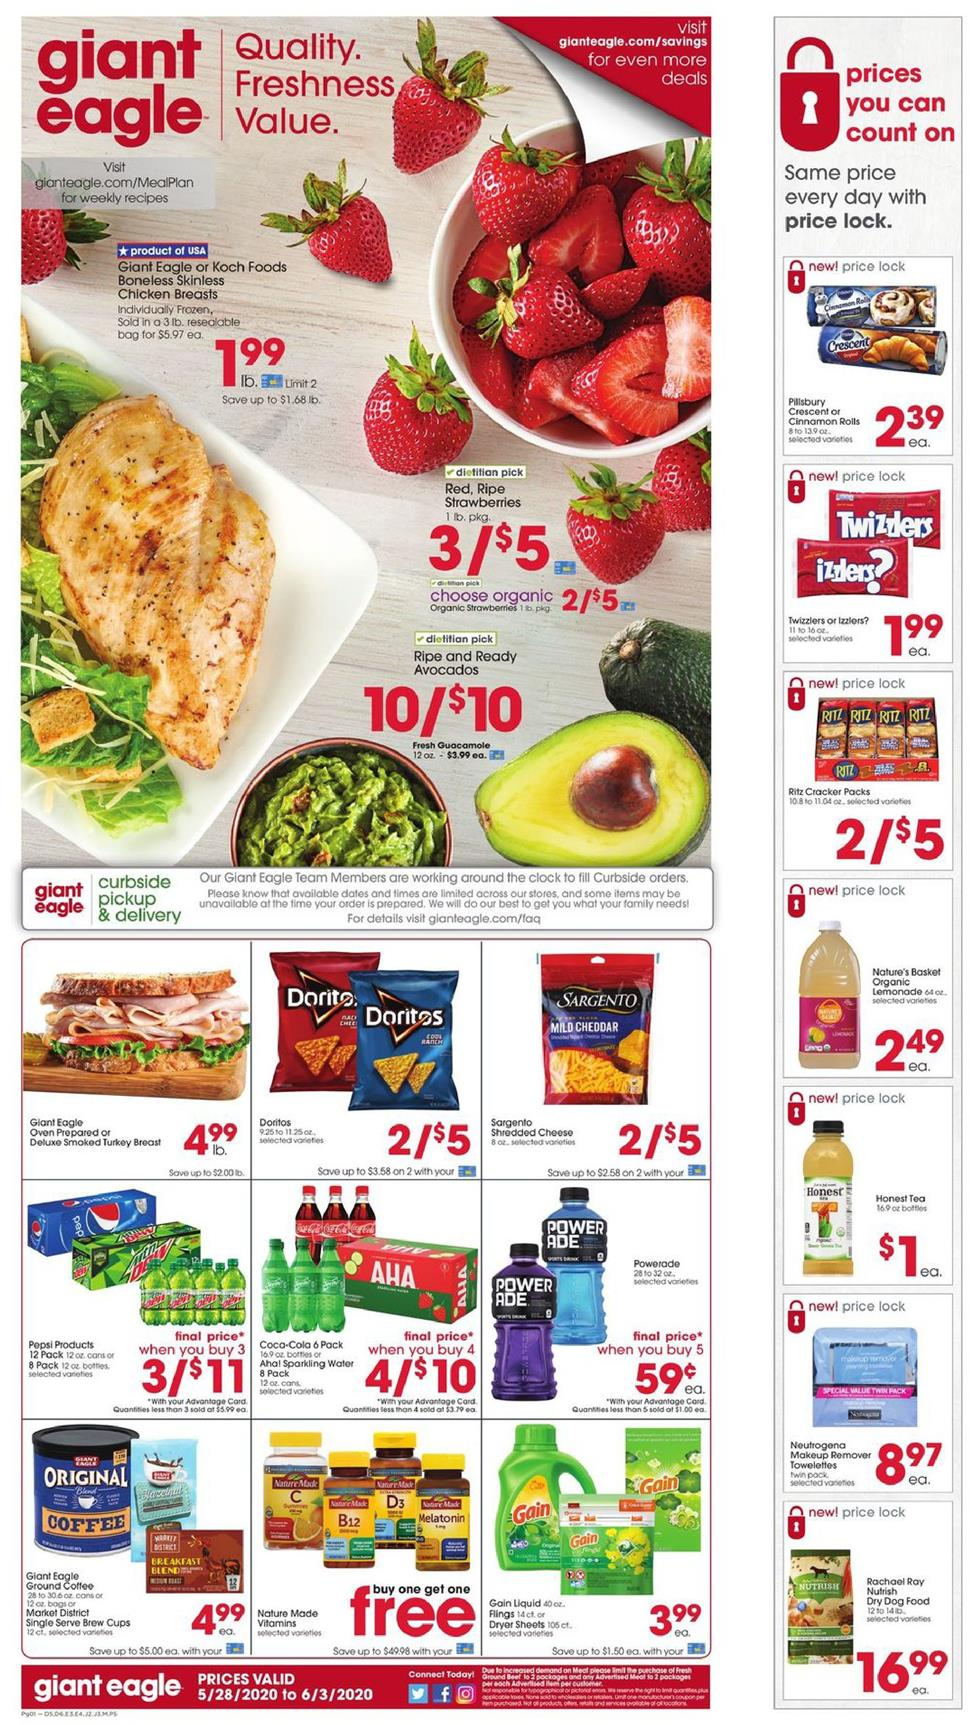 giant eagle ad may 28 2020